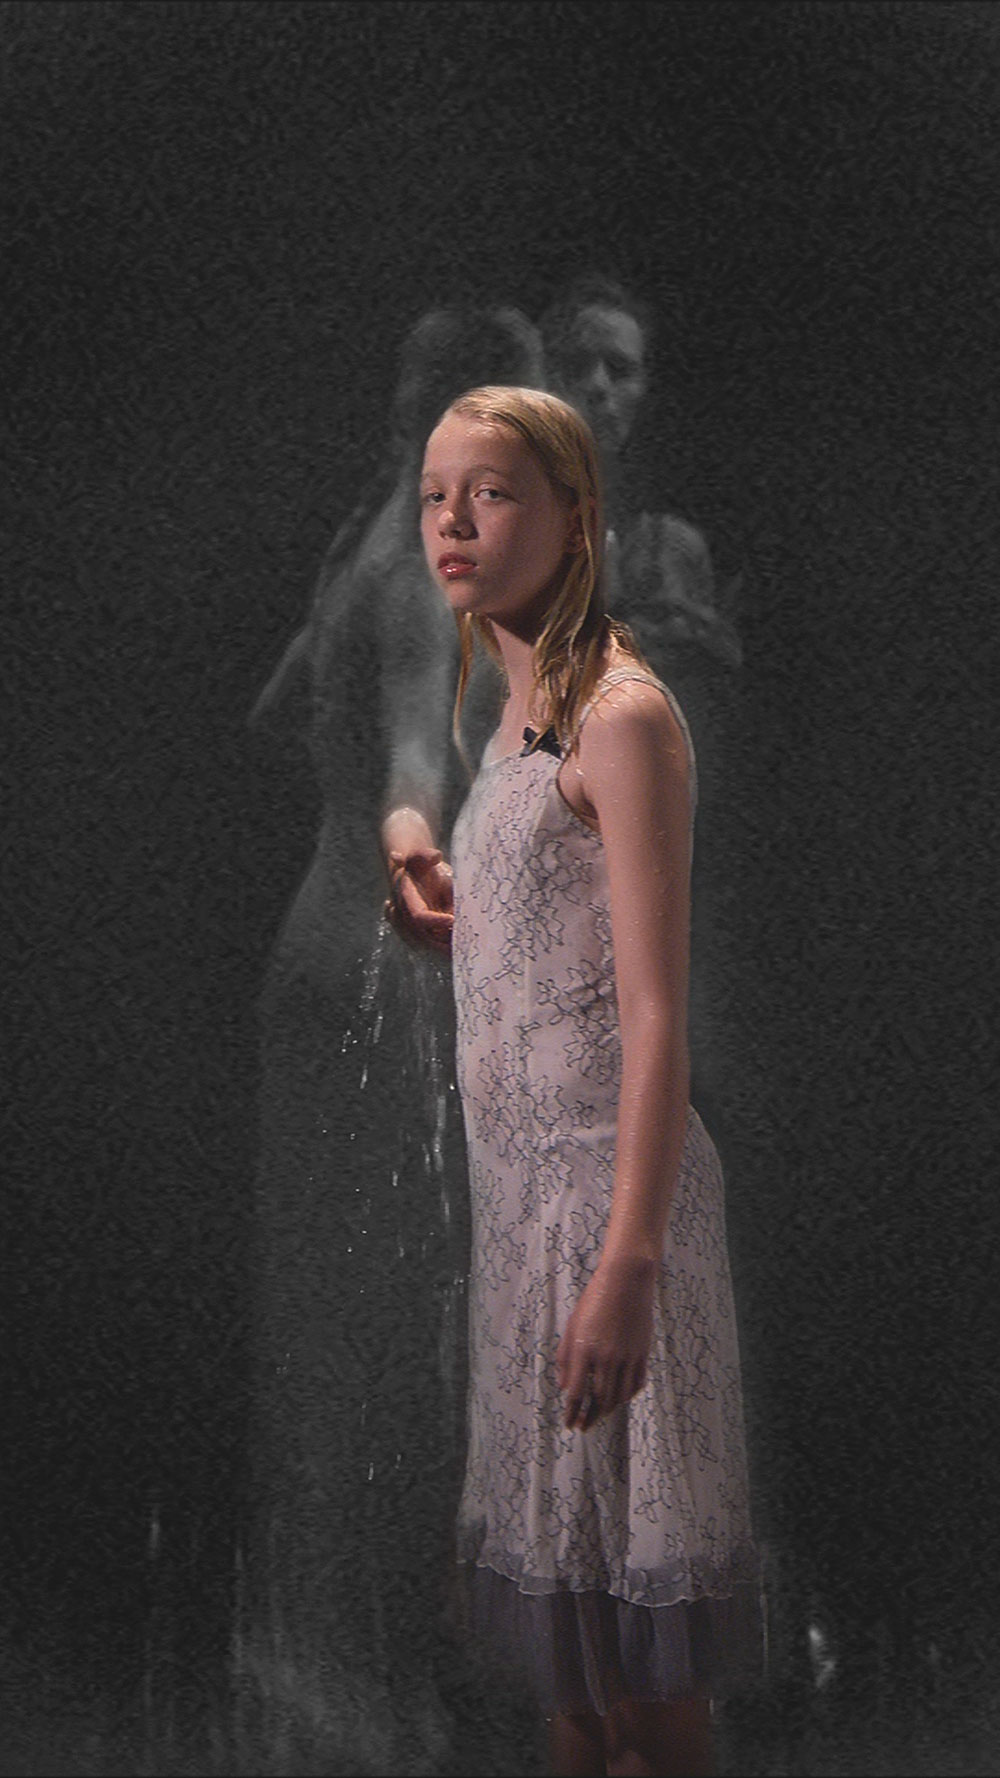 Bill Viola. Three Women, 2008 @Bill Viola Studio